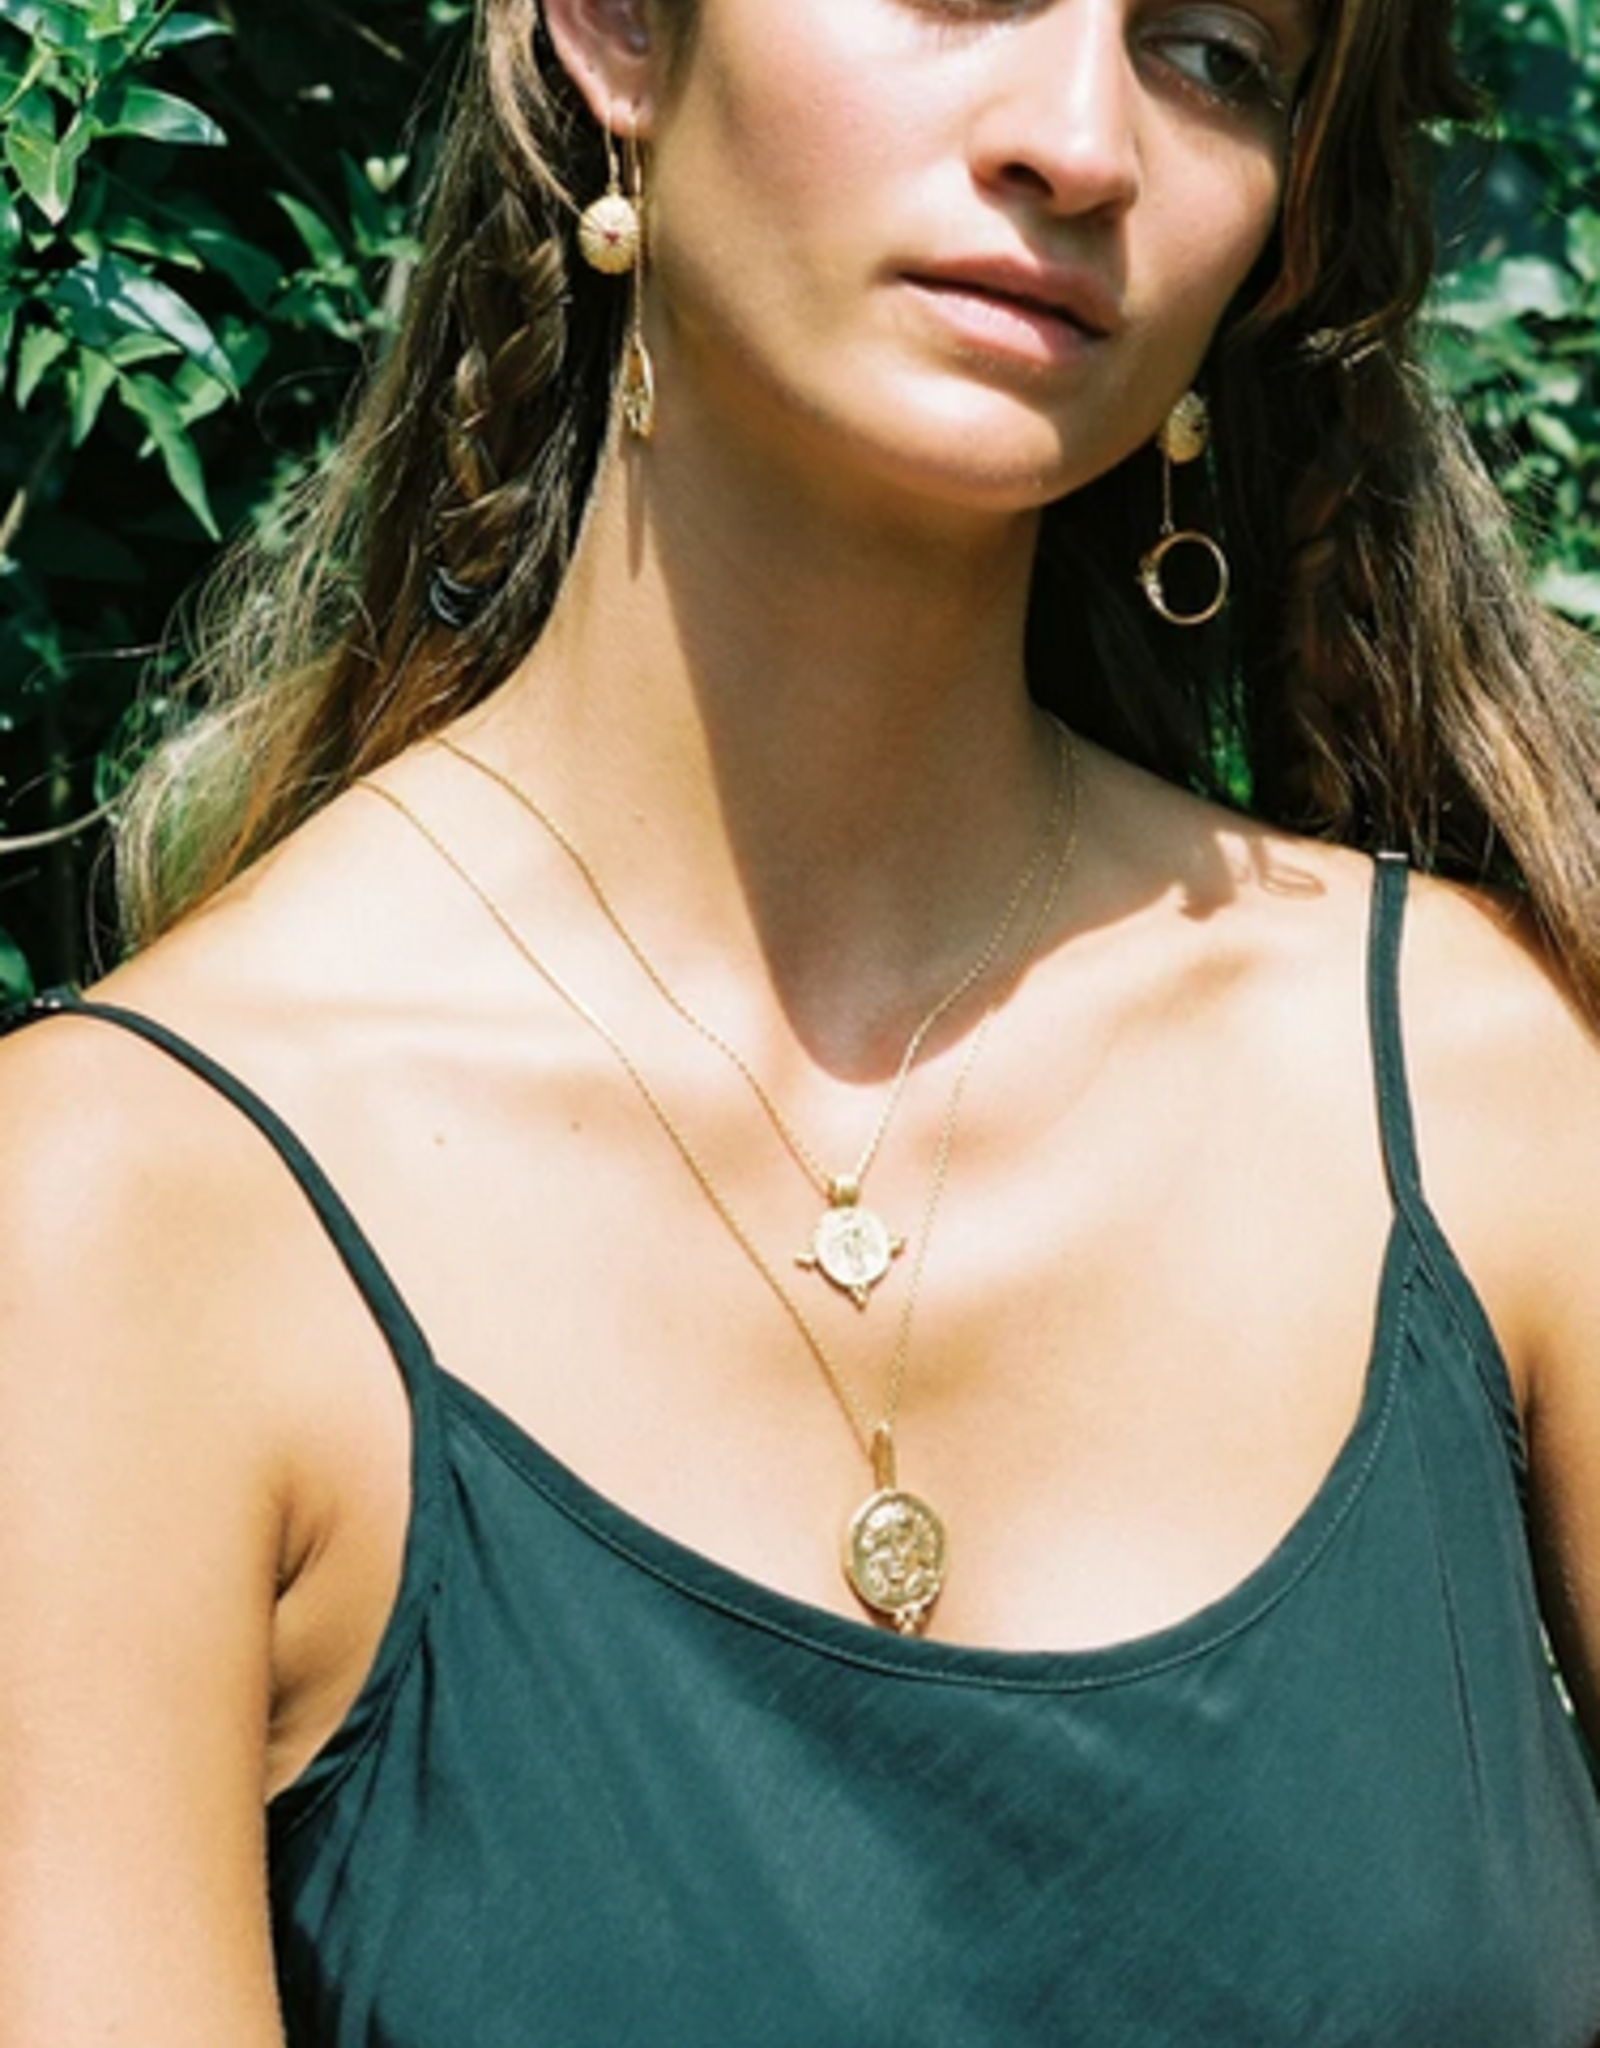 Cleopatra's Bling Gabriel Pendant goldplated necklace